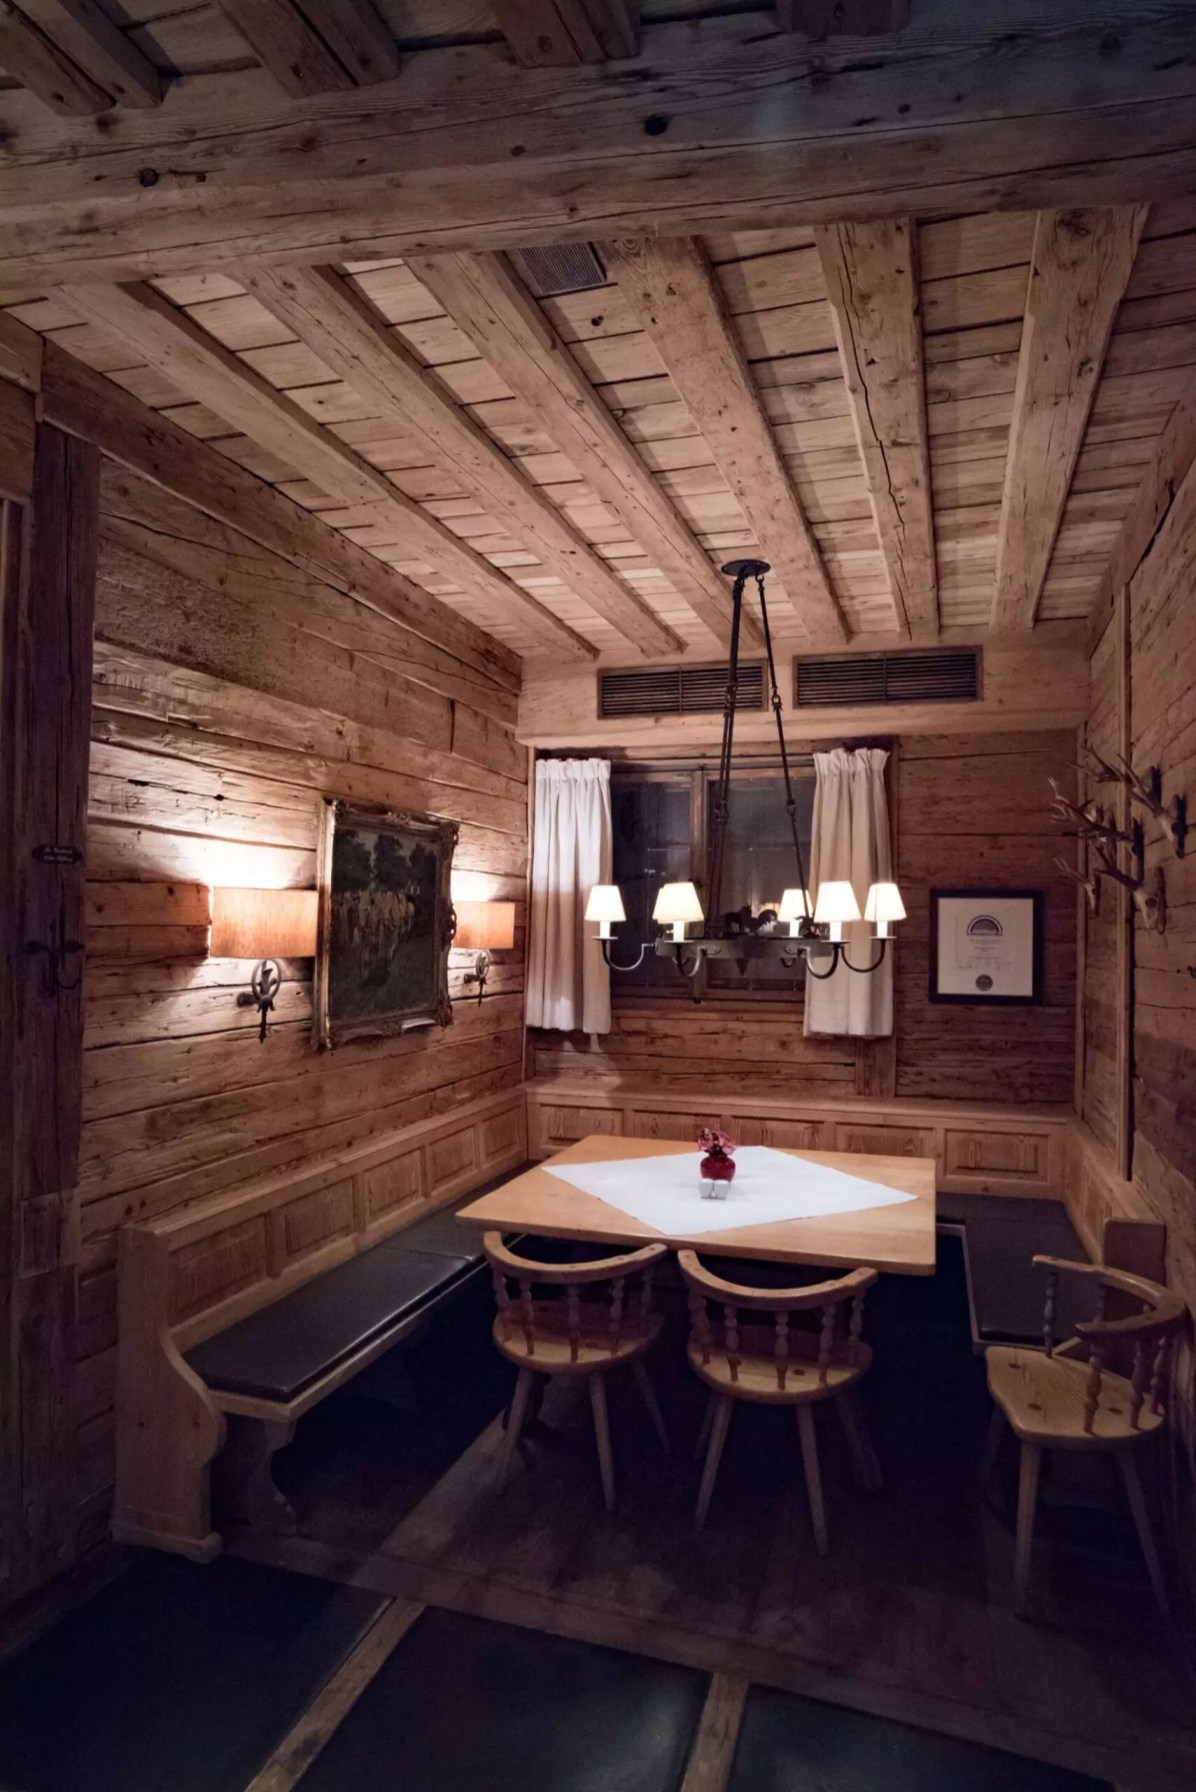 Spatenhaus, Munich beer hall: The decor - Things to do in Munich, Where to Stay in Munich